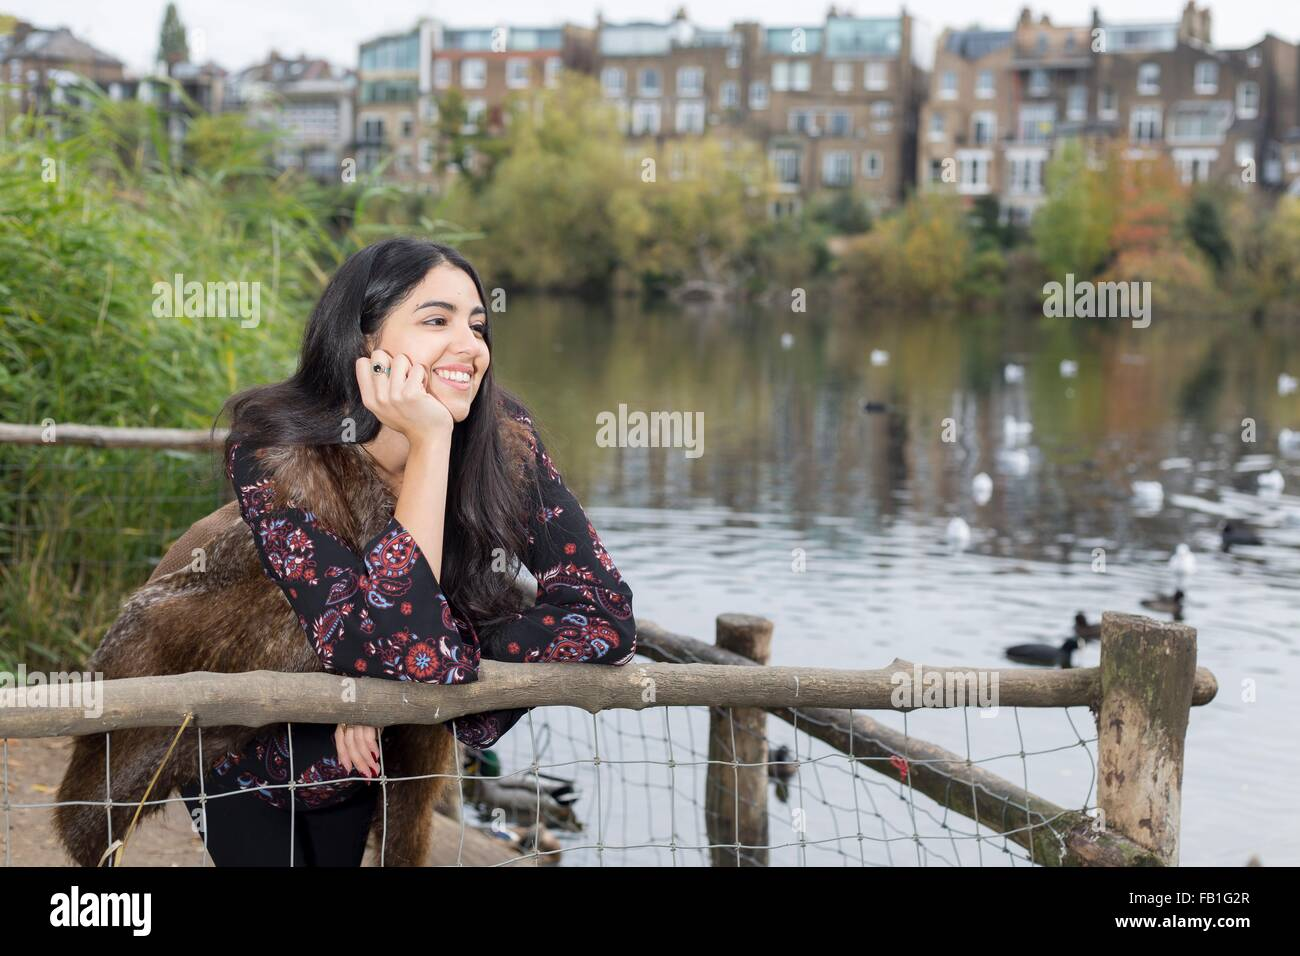 Young woman relaxing by lake, Hampstead Heath, London - Stock Image